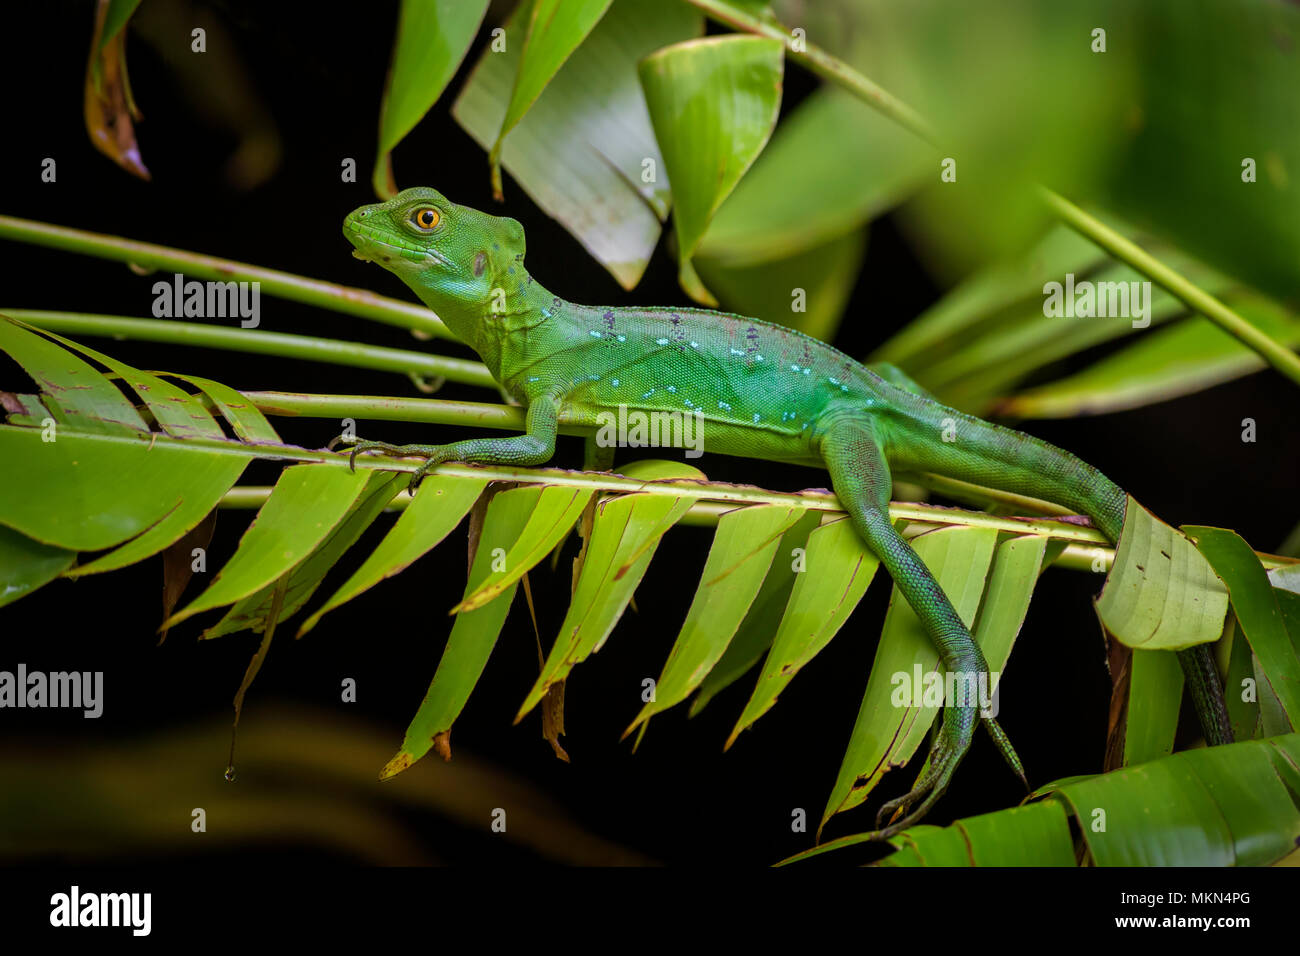 Green Basilisk - Basiliscus plumifrons, green lizard from Central America forests, Costa Rica. Stock Photo